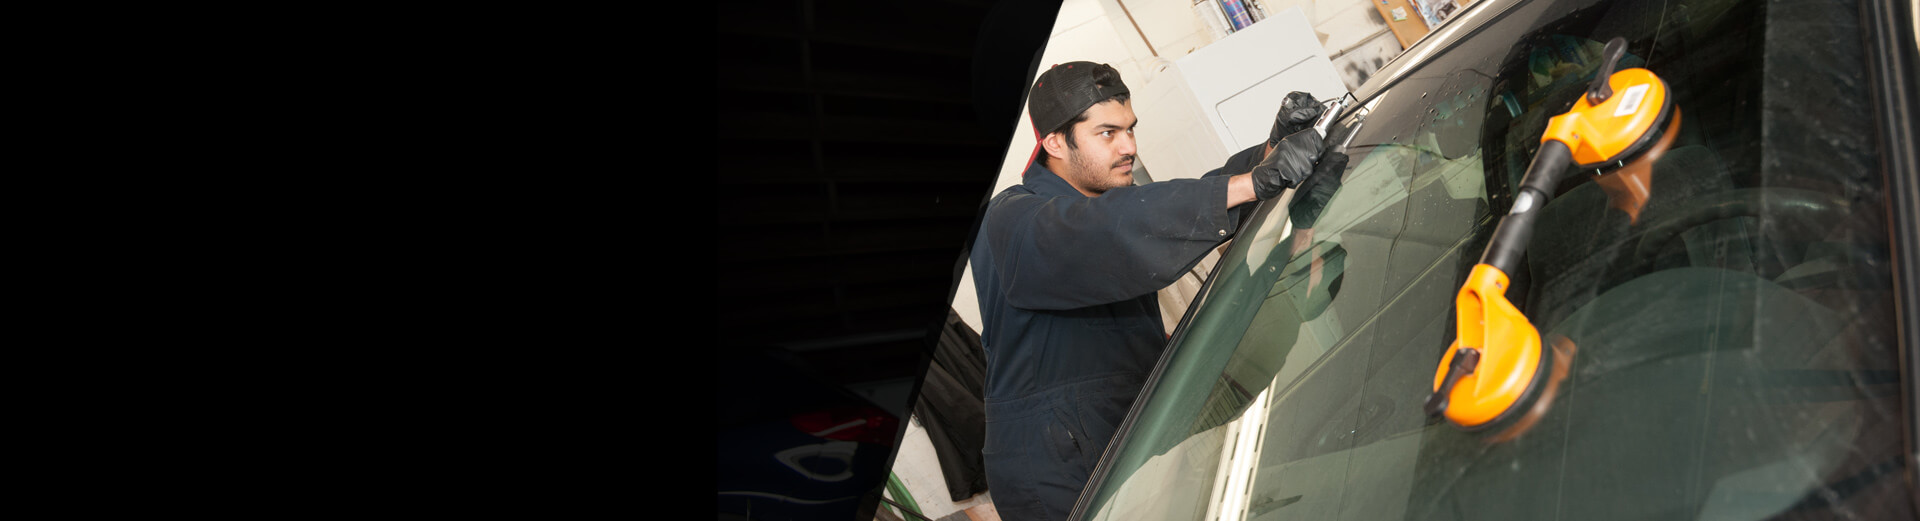 <i>Auto Glass Repair</i>